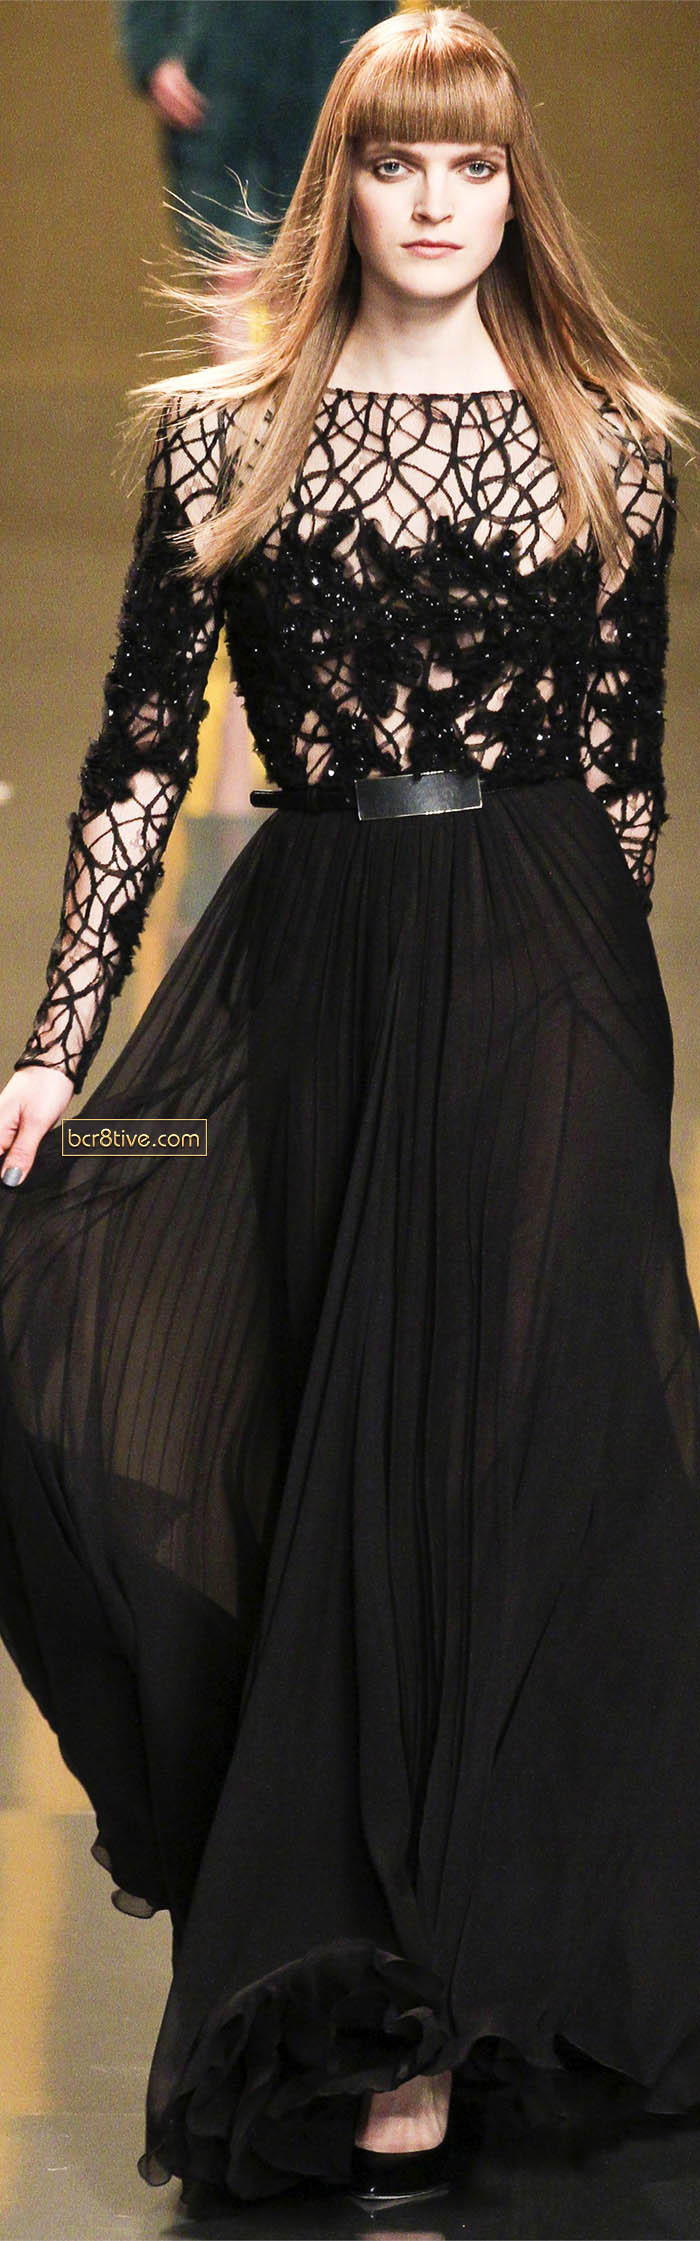 Elie Saab Fall Winter 2012 RTW